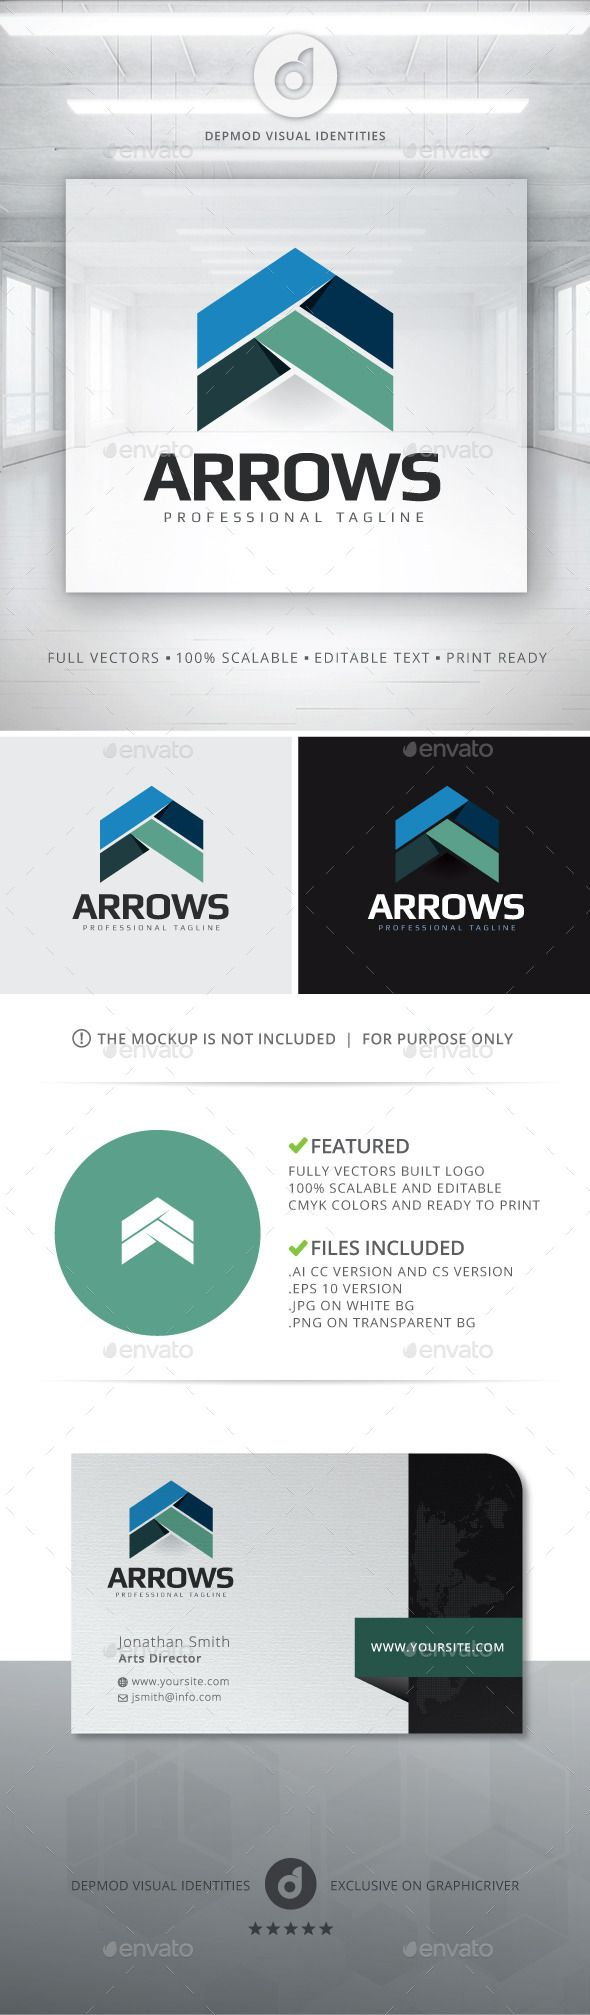 Arrows  Logo Design Template Vector #logotype Download it here: http://graphicriver.net/item/arrows-logo/12847114?s_rank=523?ref=nexion